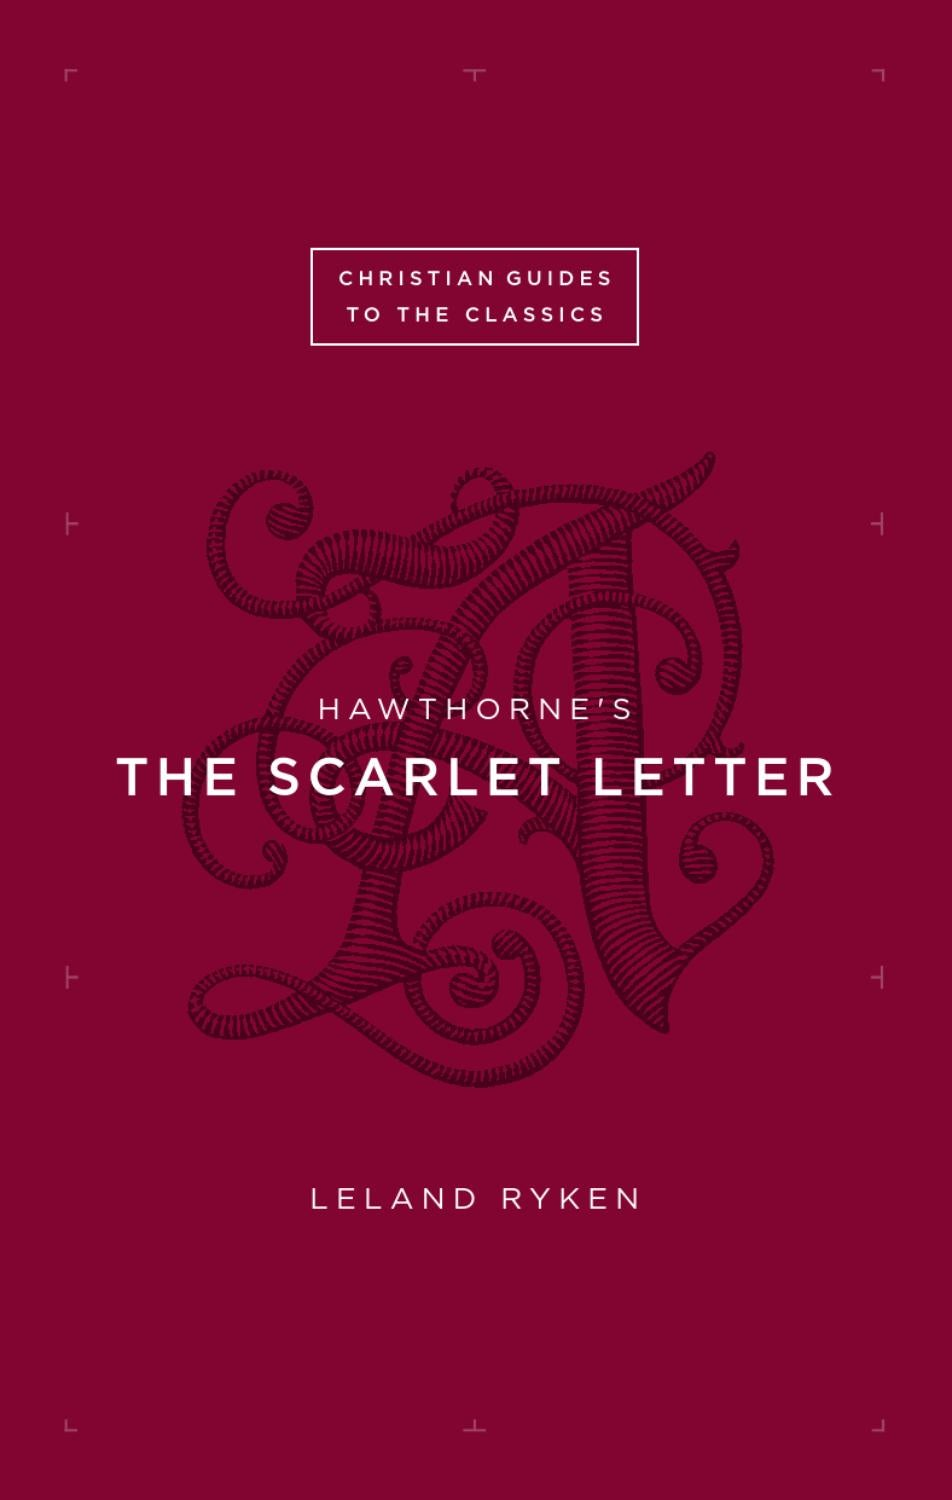 essays on the scarlet letter essays on the scarlet brief scarlet  the scarlet letter page count informatin for letter hawthorne 39 s the scarlet letter essays